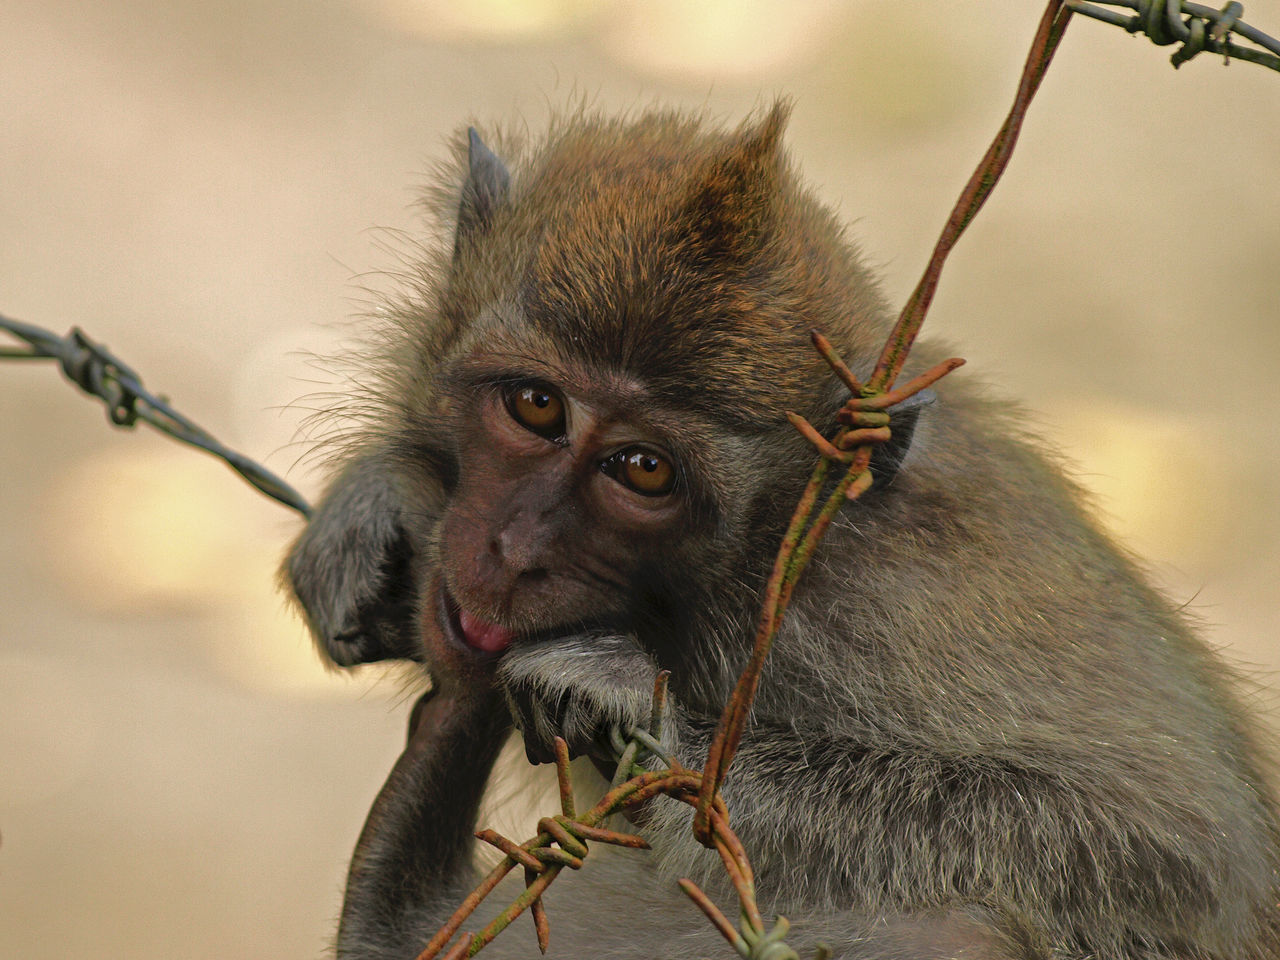 Close-Up Portrait Of Monkey On Rusty Barbed Wire